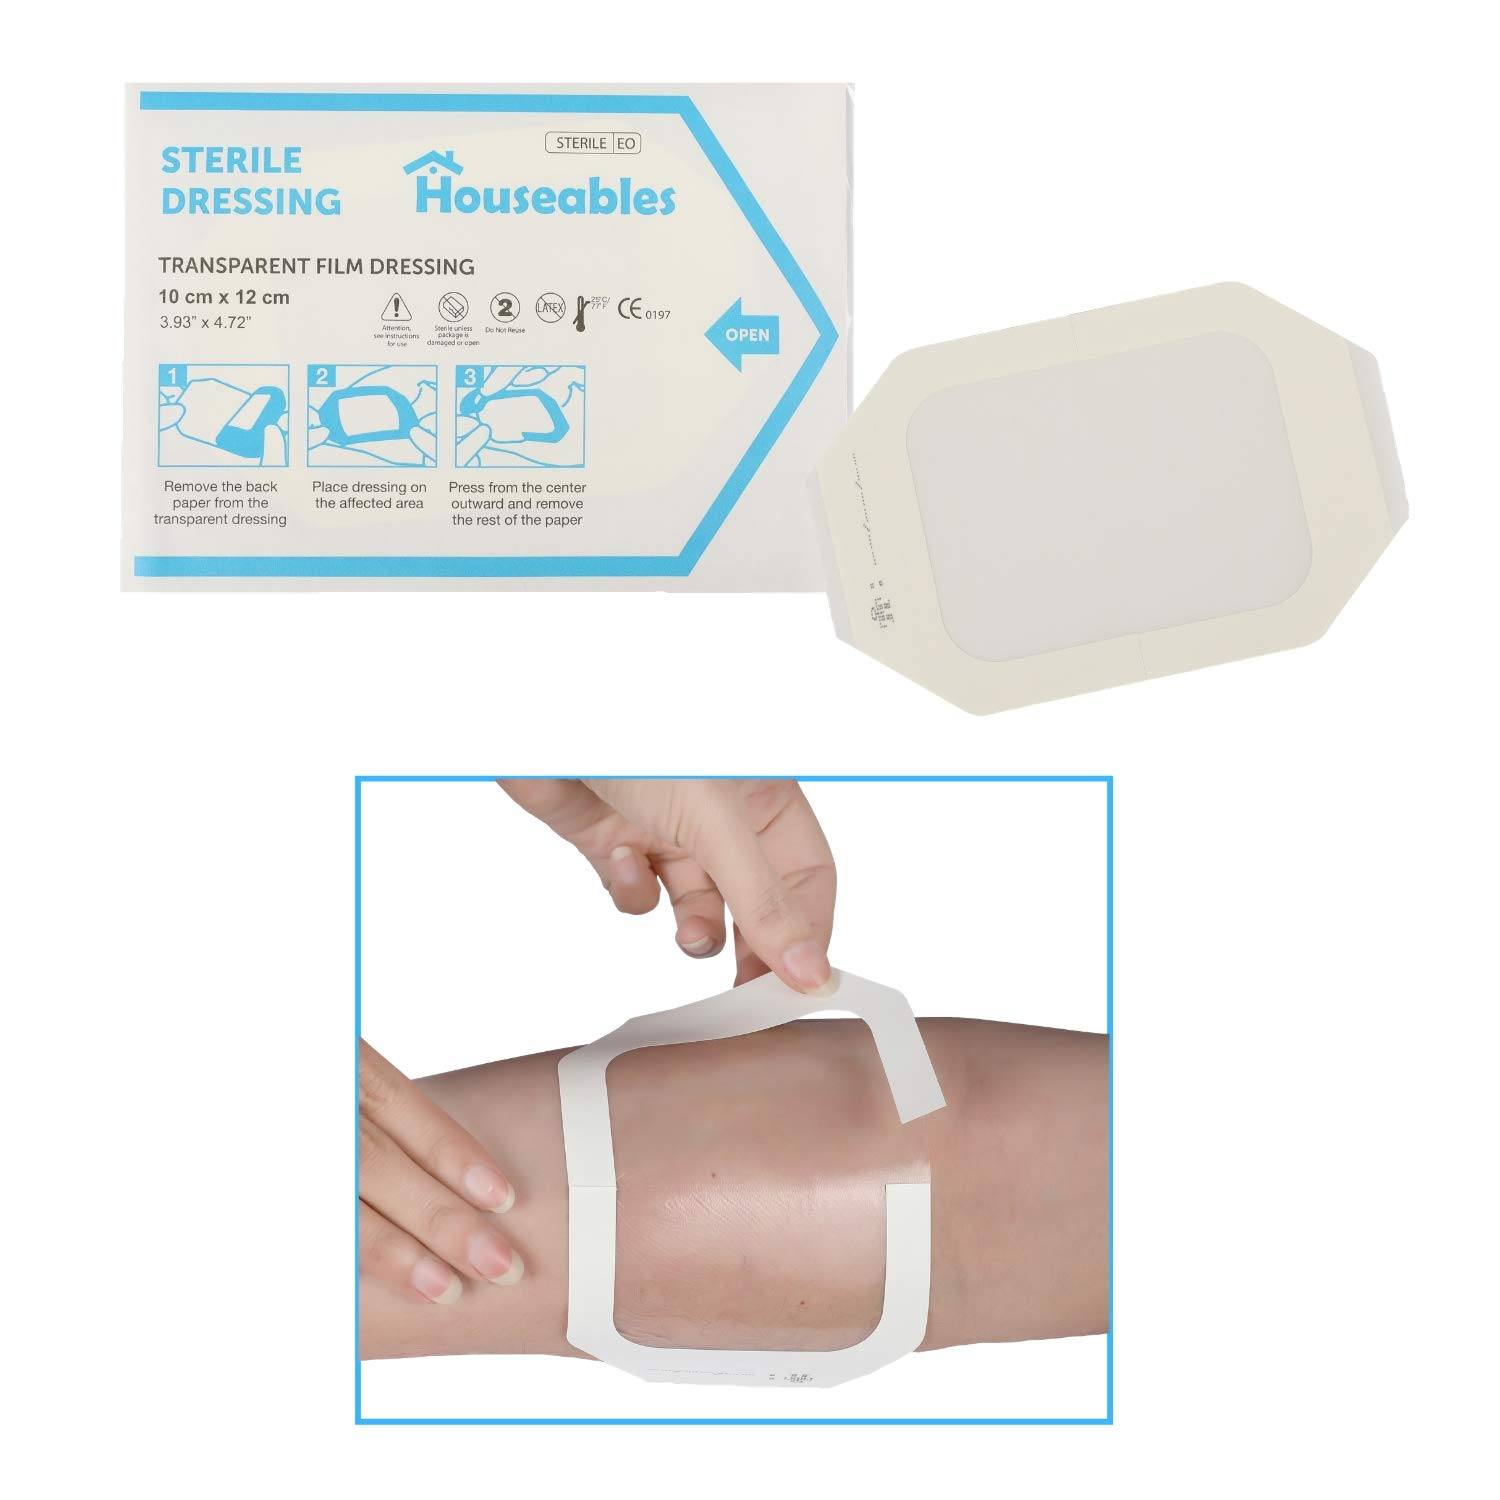 Houseables Transparent Dressing, Waterproof Wound Seal, 4''x 5'', 50 Pack, Clear, Film, Shower Shield Dressings, Large Bandages, Surgical, for Tattoo Protection, Wounds, Dialysis Catheter Shields by Houseables